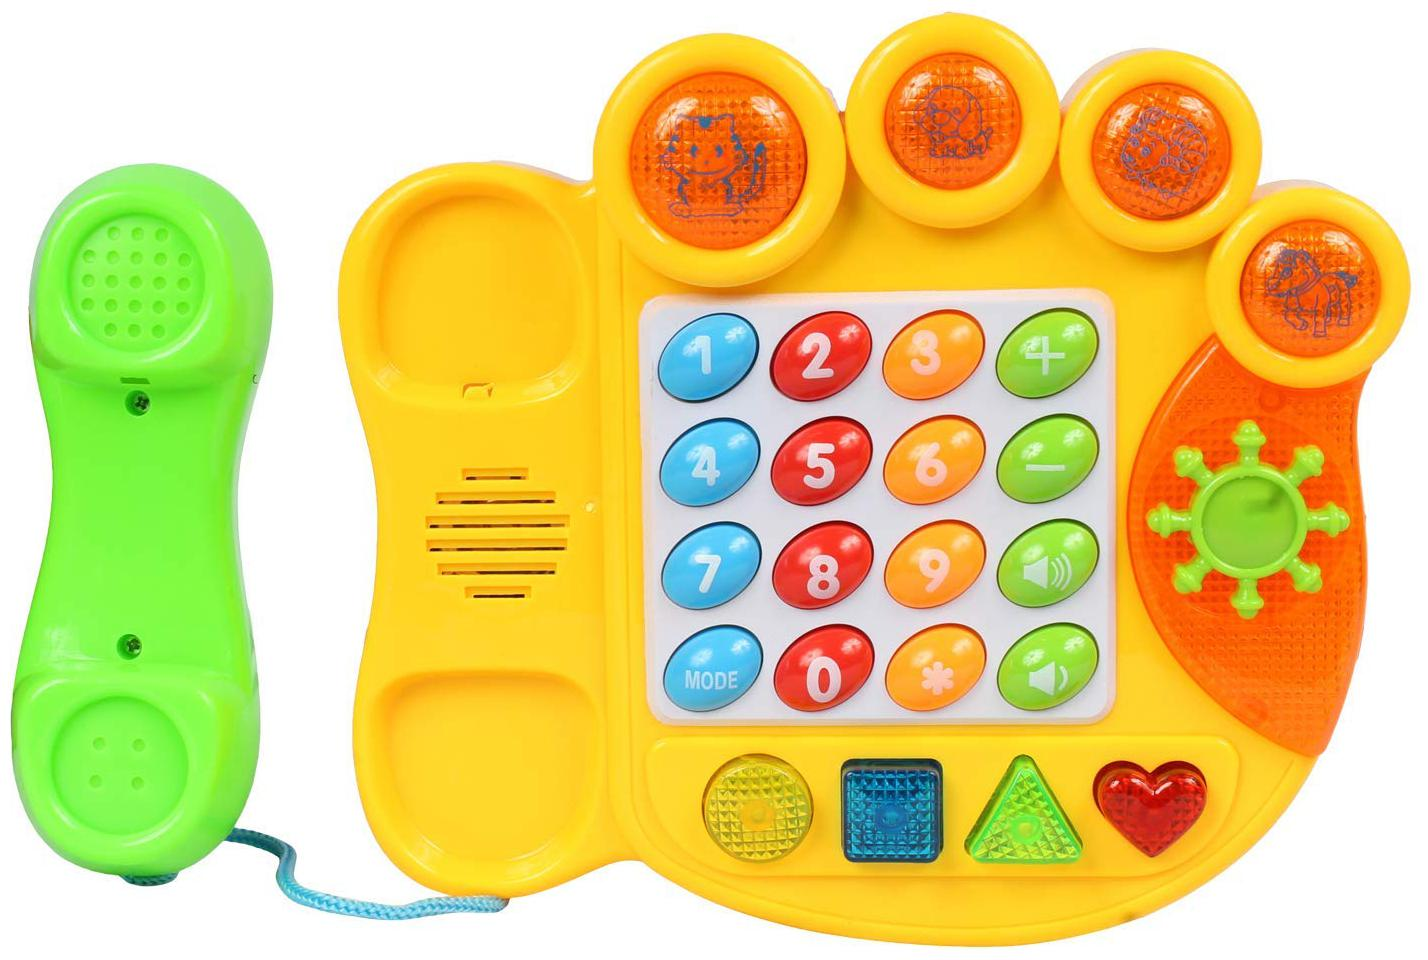 Planet of Toys Electric Learning Telephone Machine With Music   Light For Kids, Children